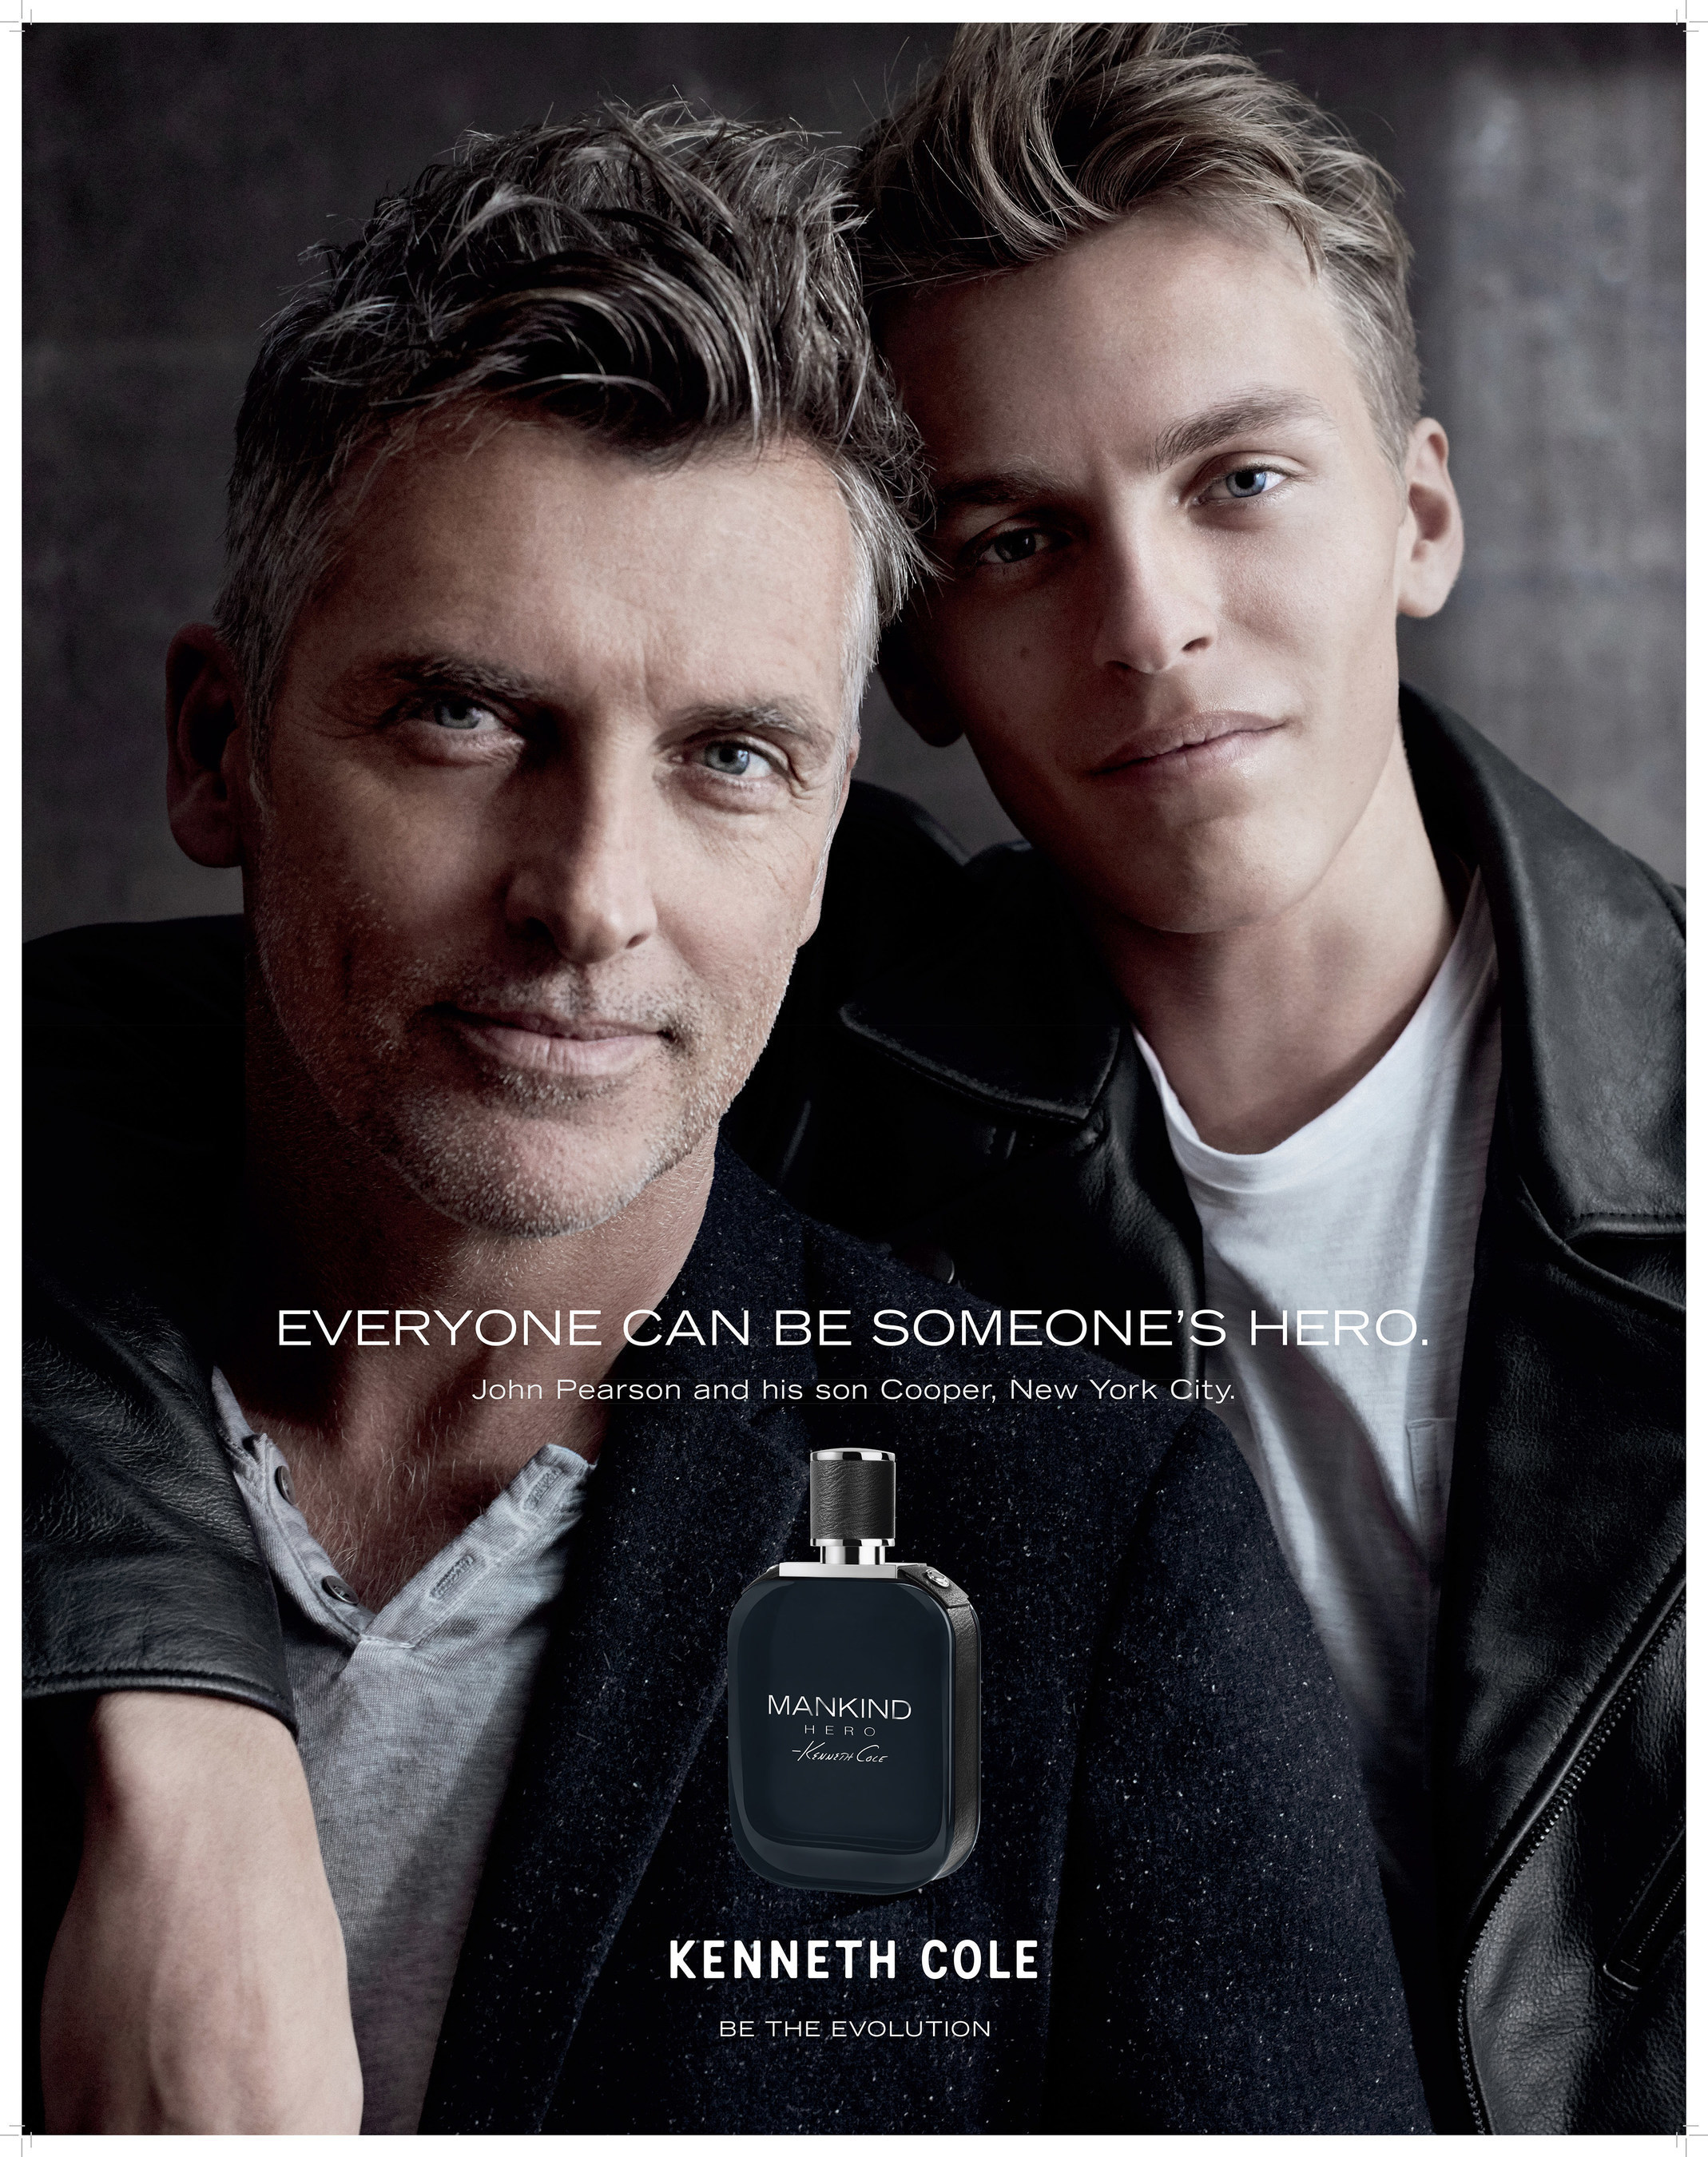 KENNETH COLE ANNOUNCES NEW MANKIND HERO FRAGRANCE